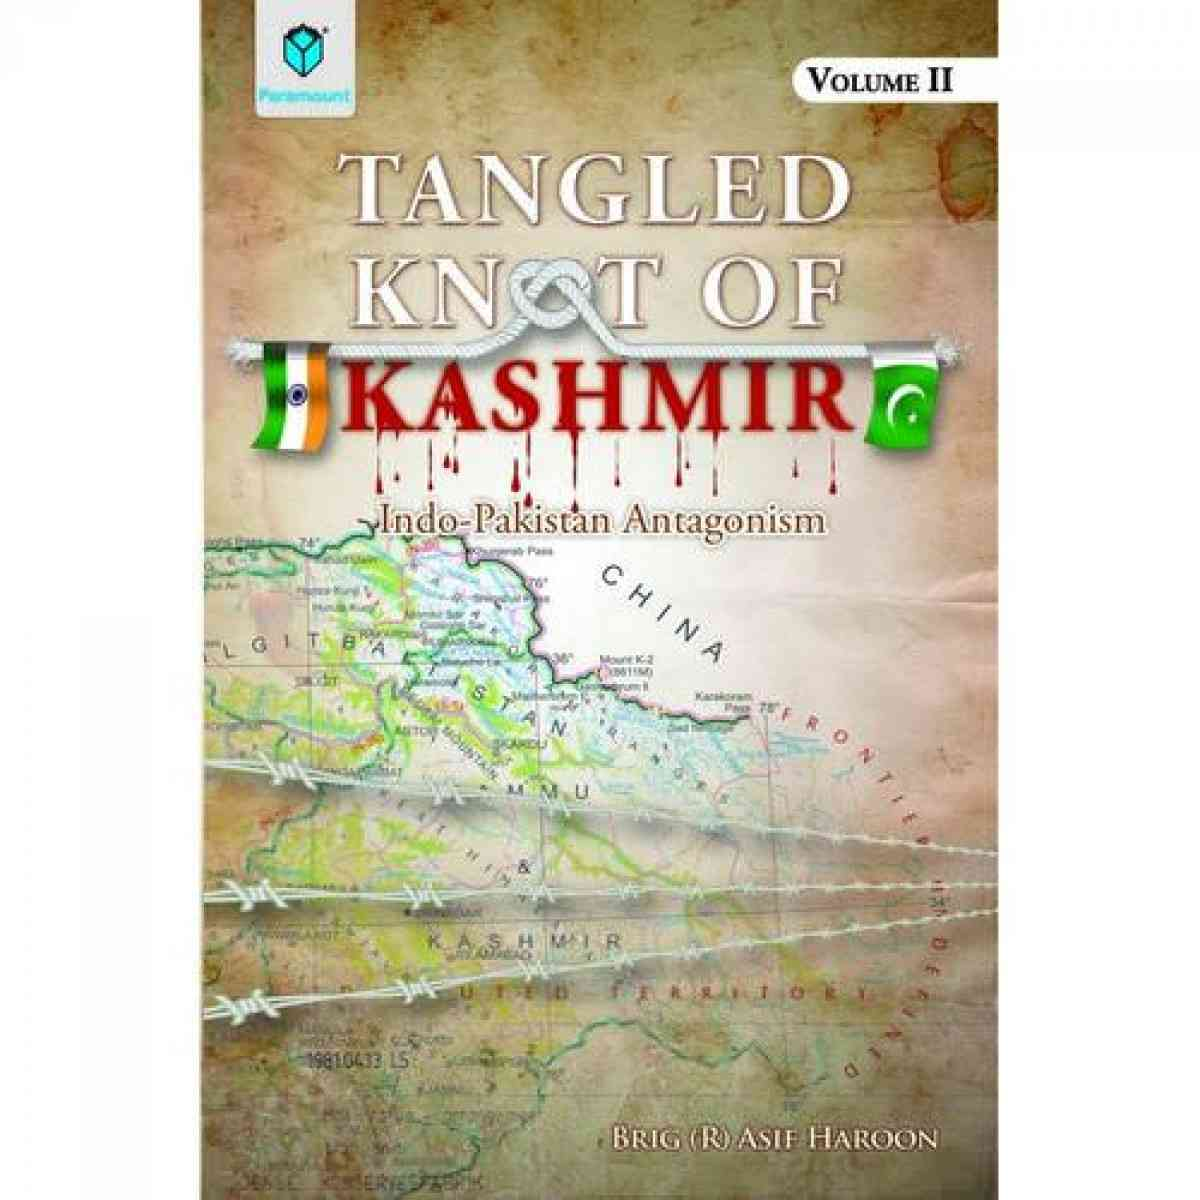 Tangled Knot Of Kashmir Volume II 2014